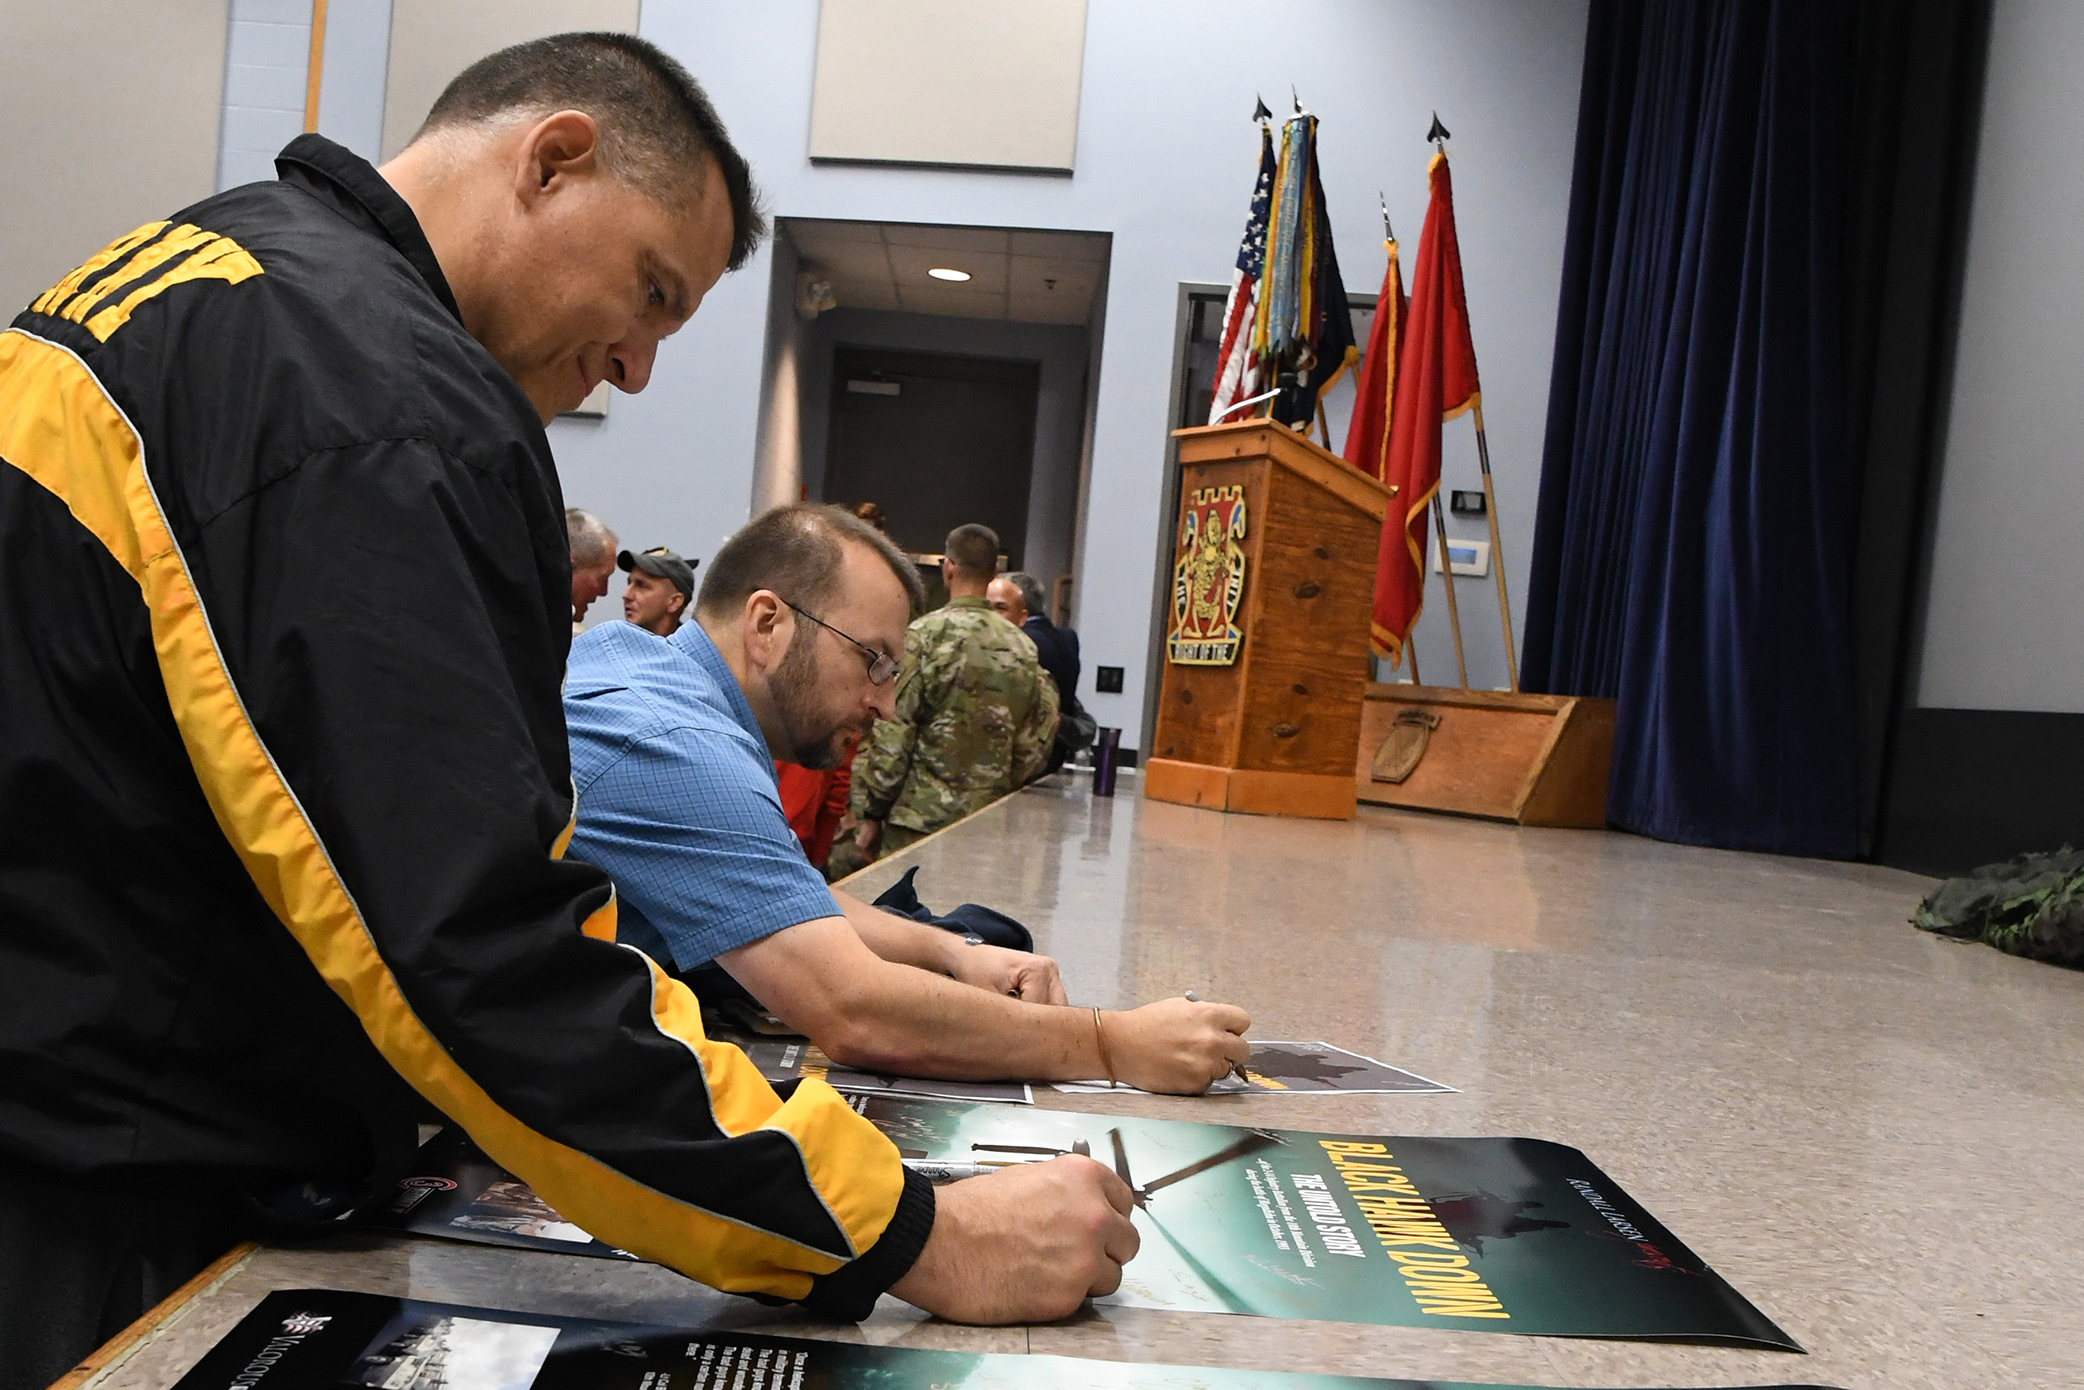 """Caption: Veterans sign the movie poster for """"Black Hawk Down: The Untold Story"""" at an October screening at Fort Drum, N.Y., Credit: Mike Strasser / U.S. Army"""